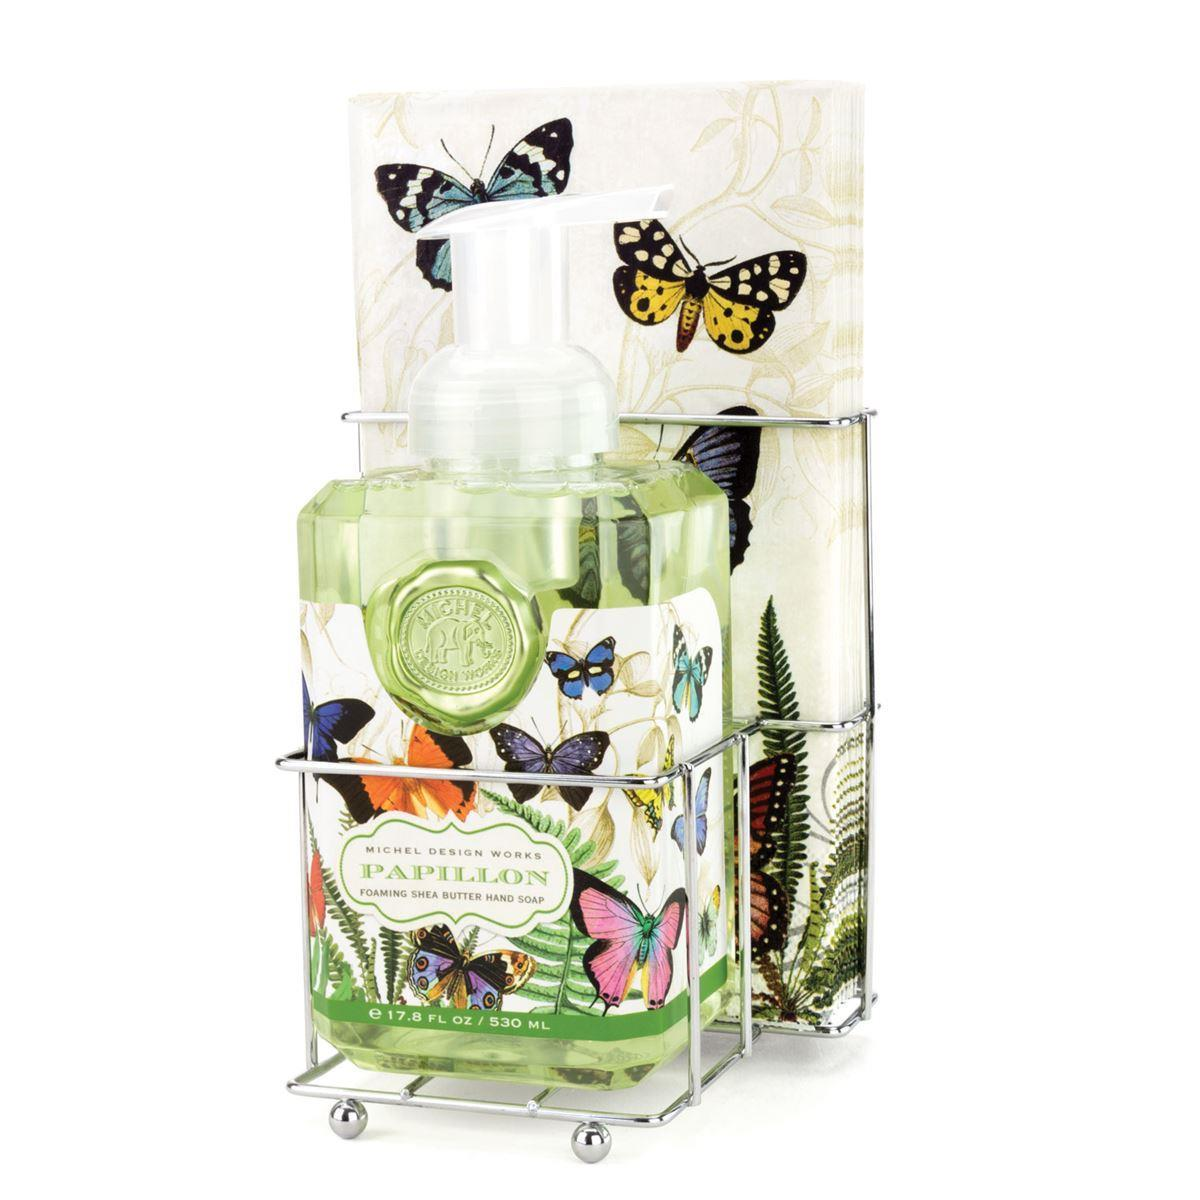 Papillon Foaming Hand Soap Napkin Set - Boutique Marie Dumas